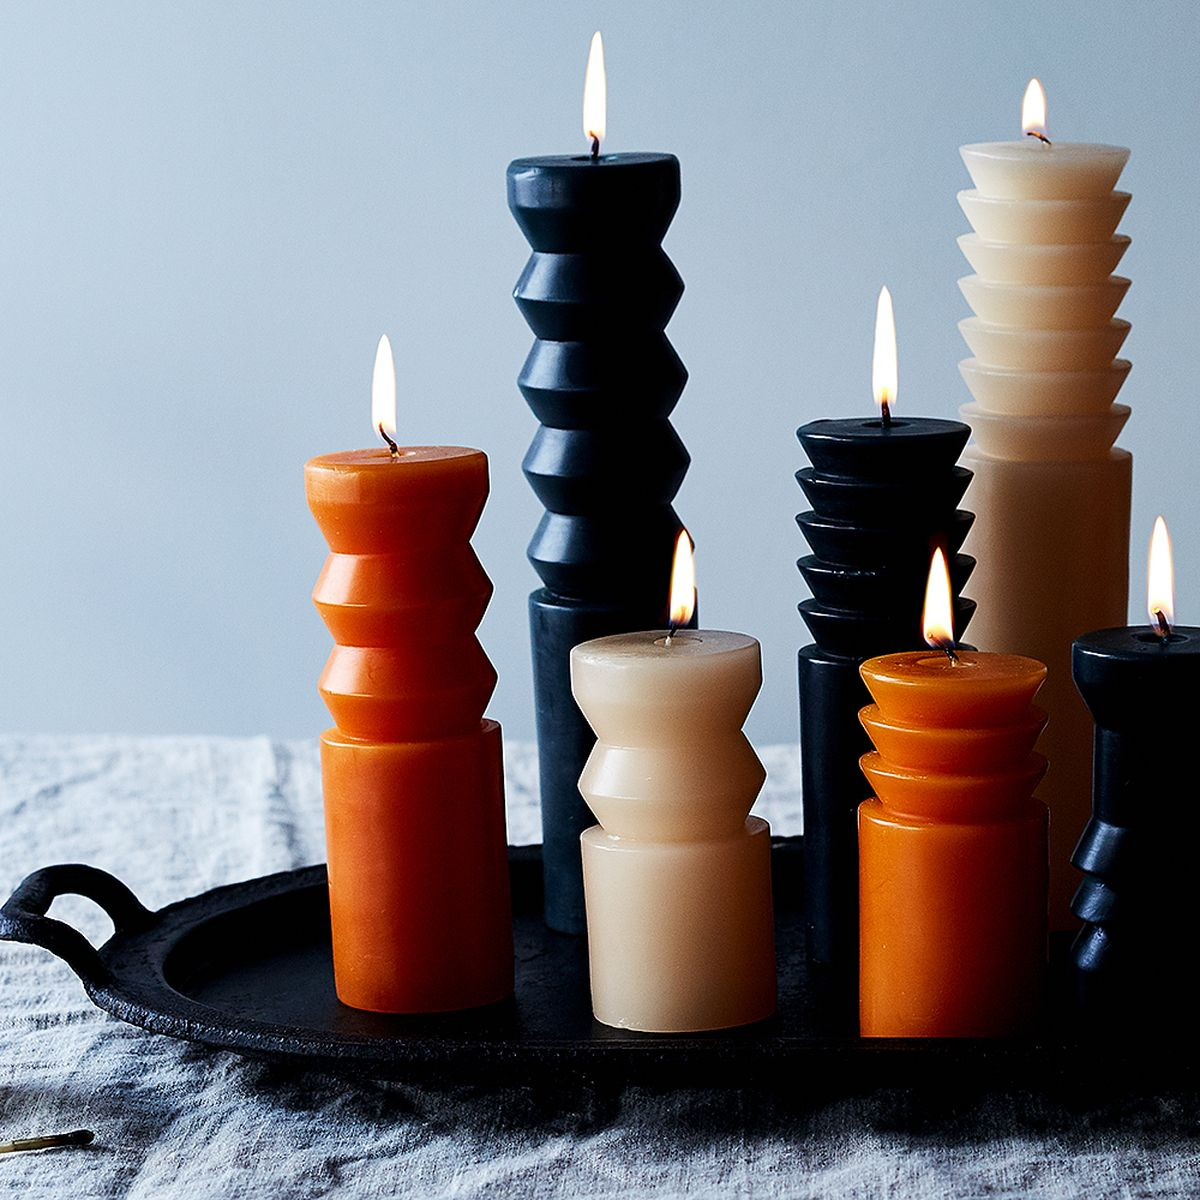 12 Sophisticated But Still Fun Halloween Decorations